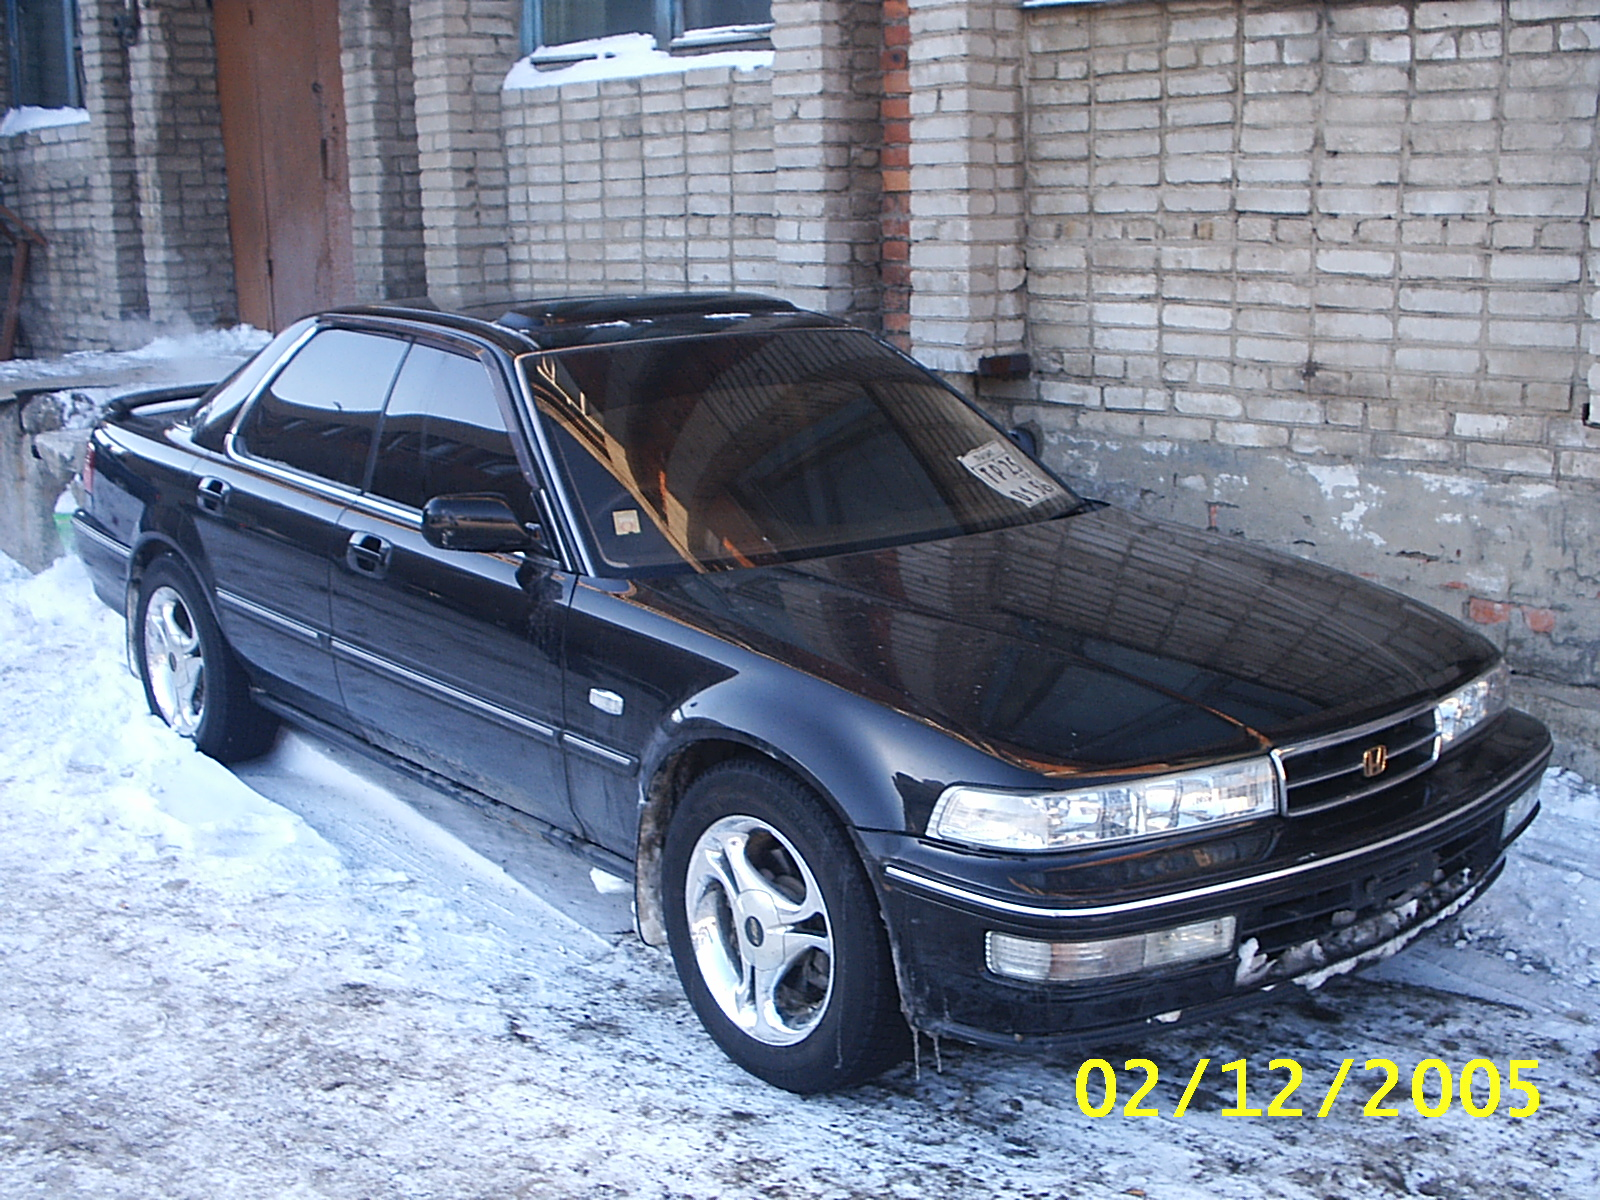 1994 honda accord inspire pictures for sale rh cars directory net 1994 honda accord manual for sale 1994 honda accord manual pdf